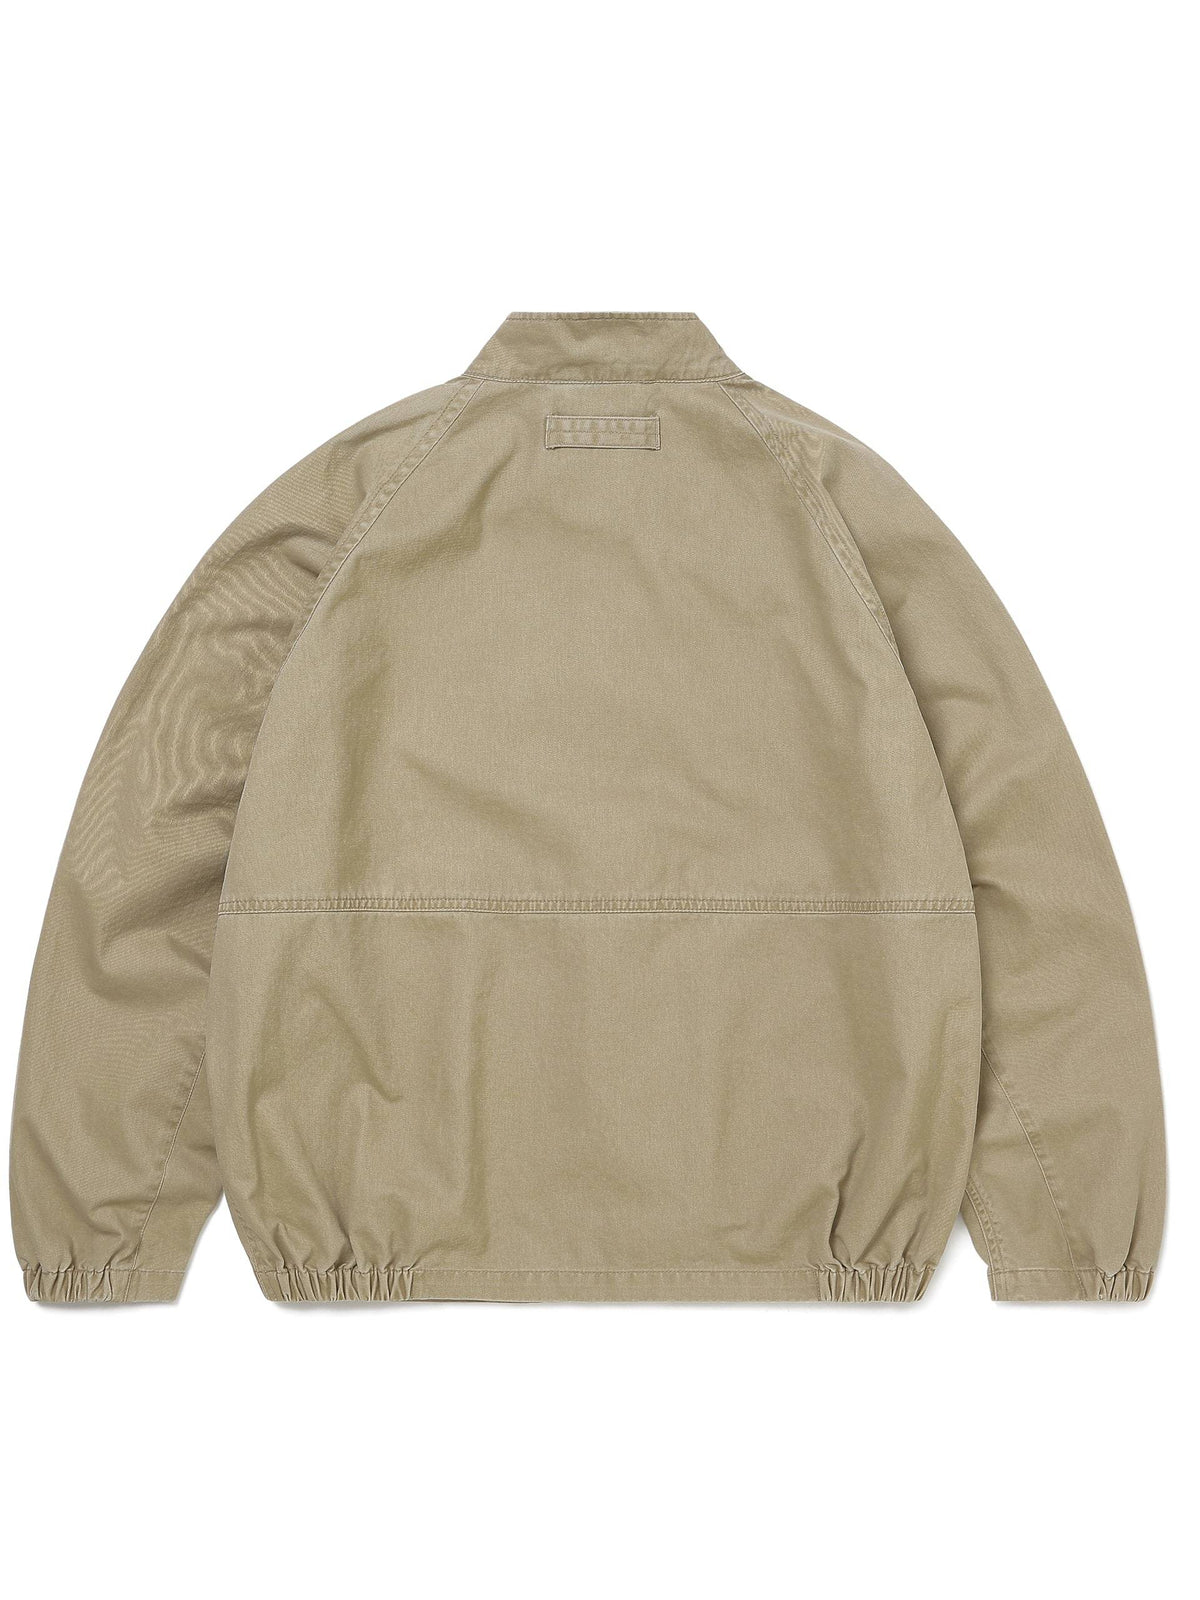 Raglan Zip Jacket Outerwear